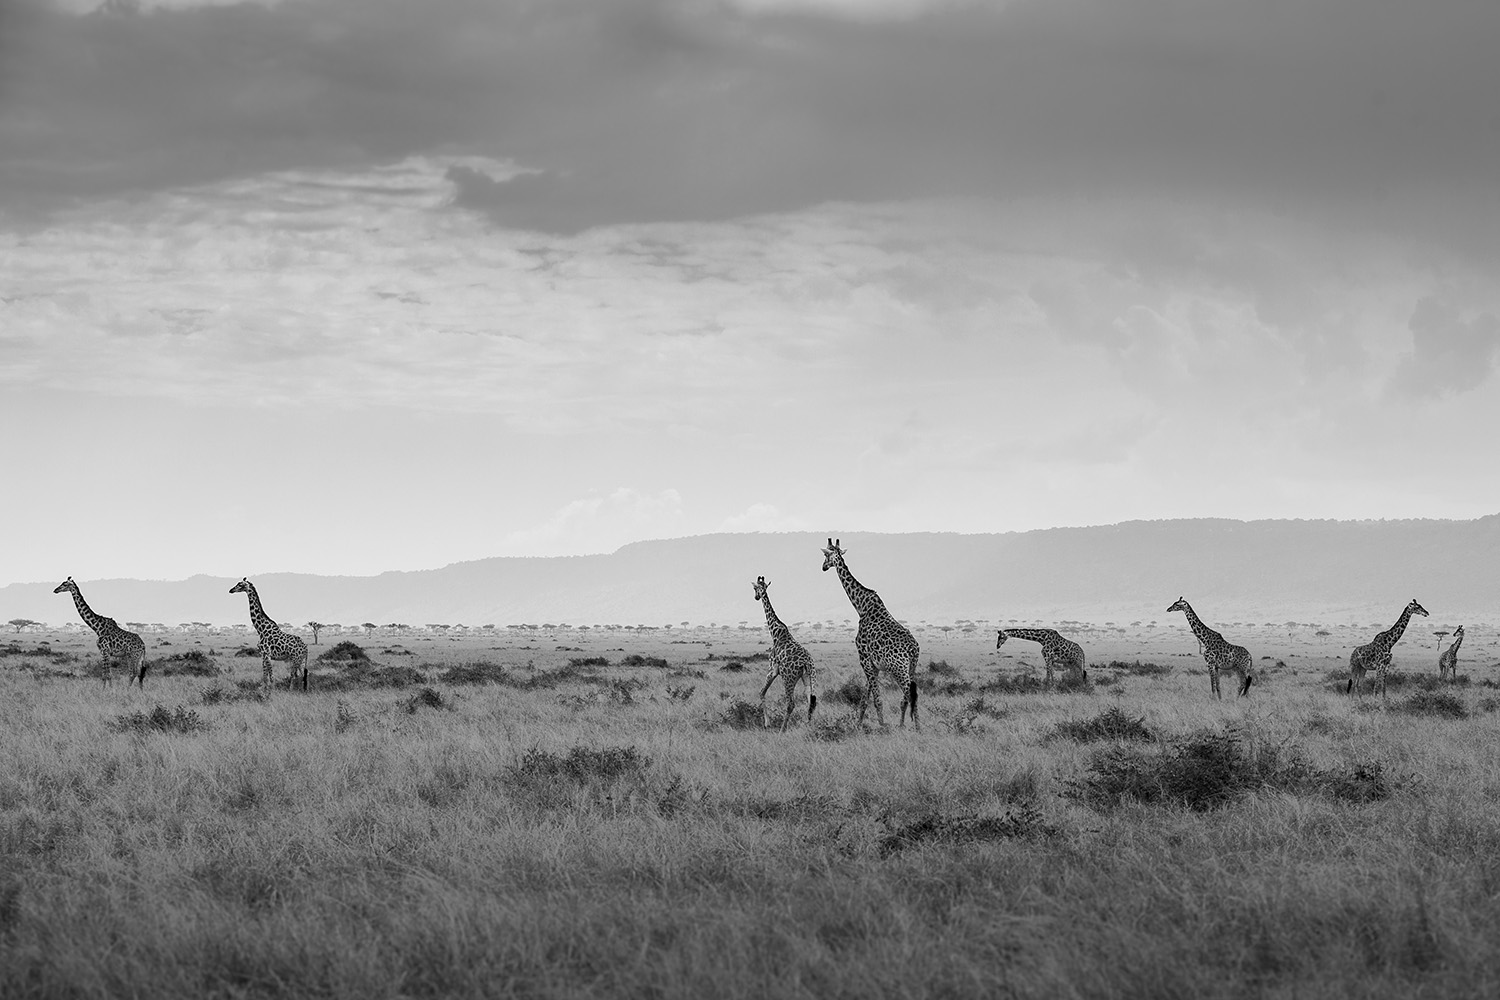 Giraffes in black and white